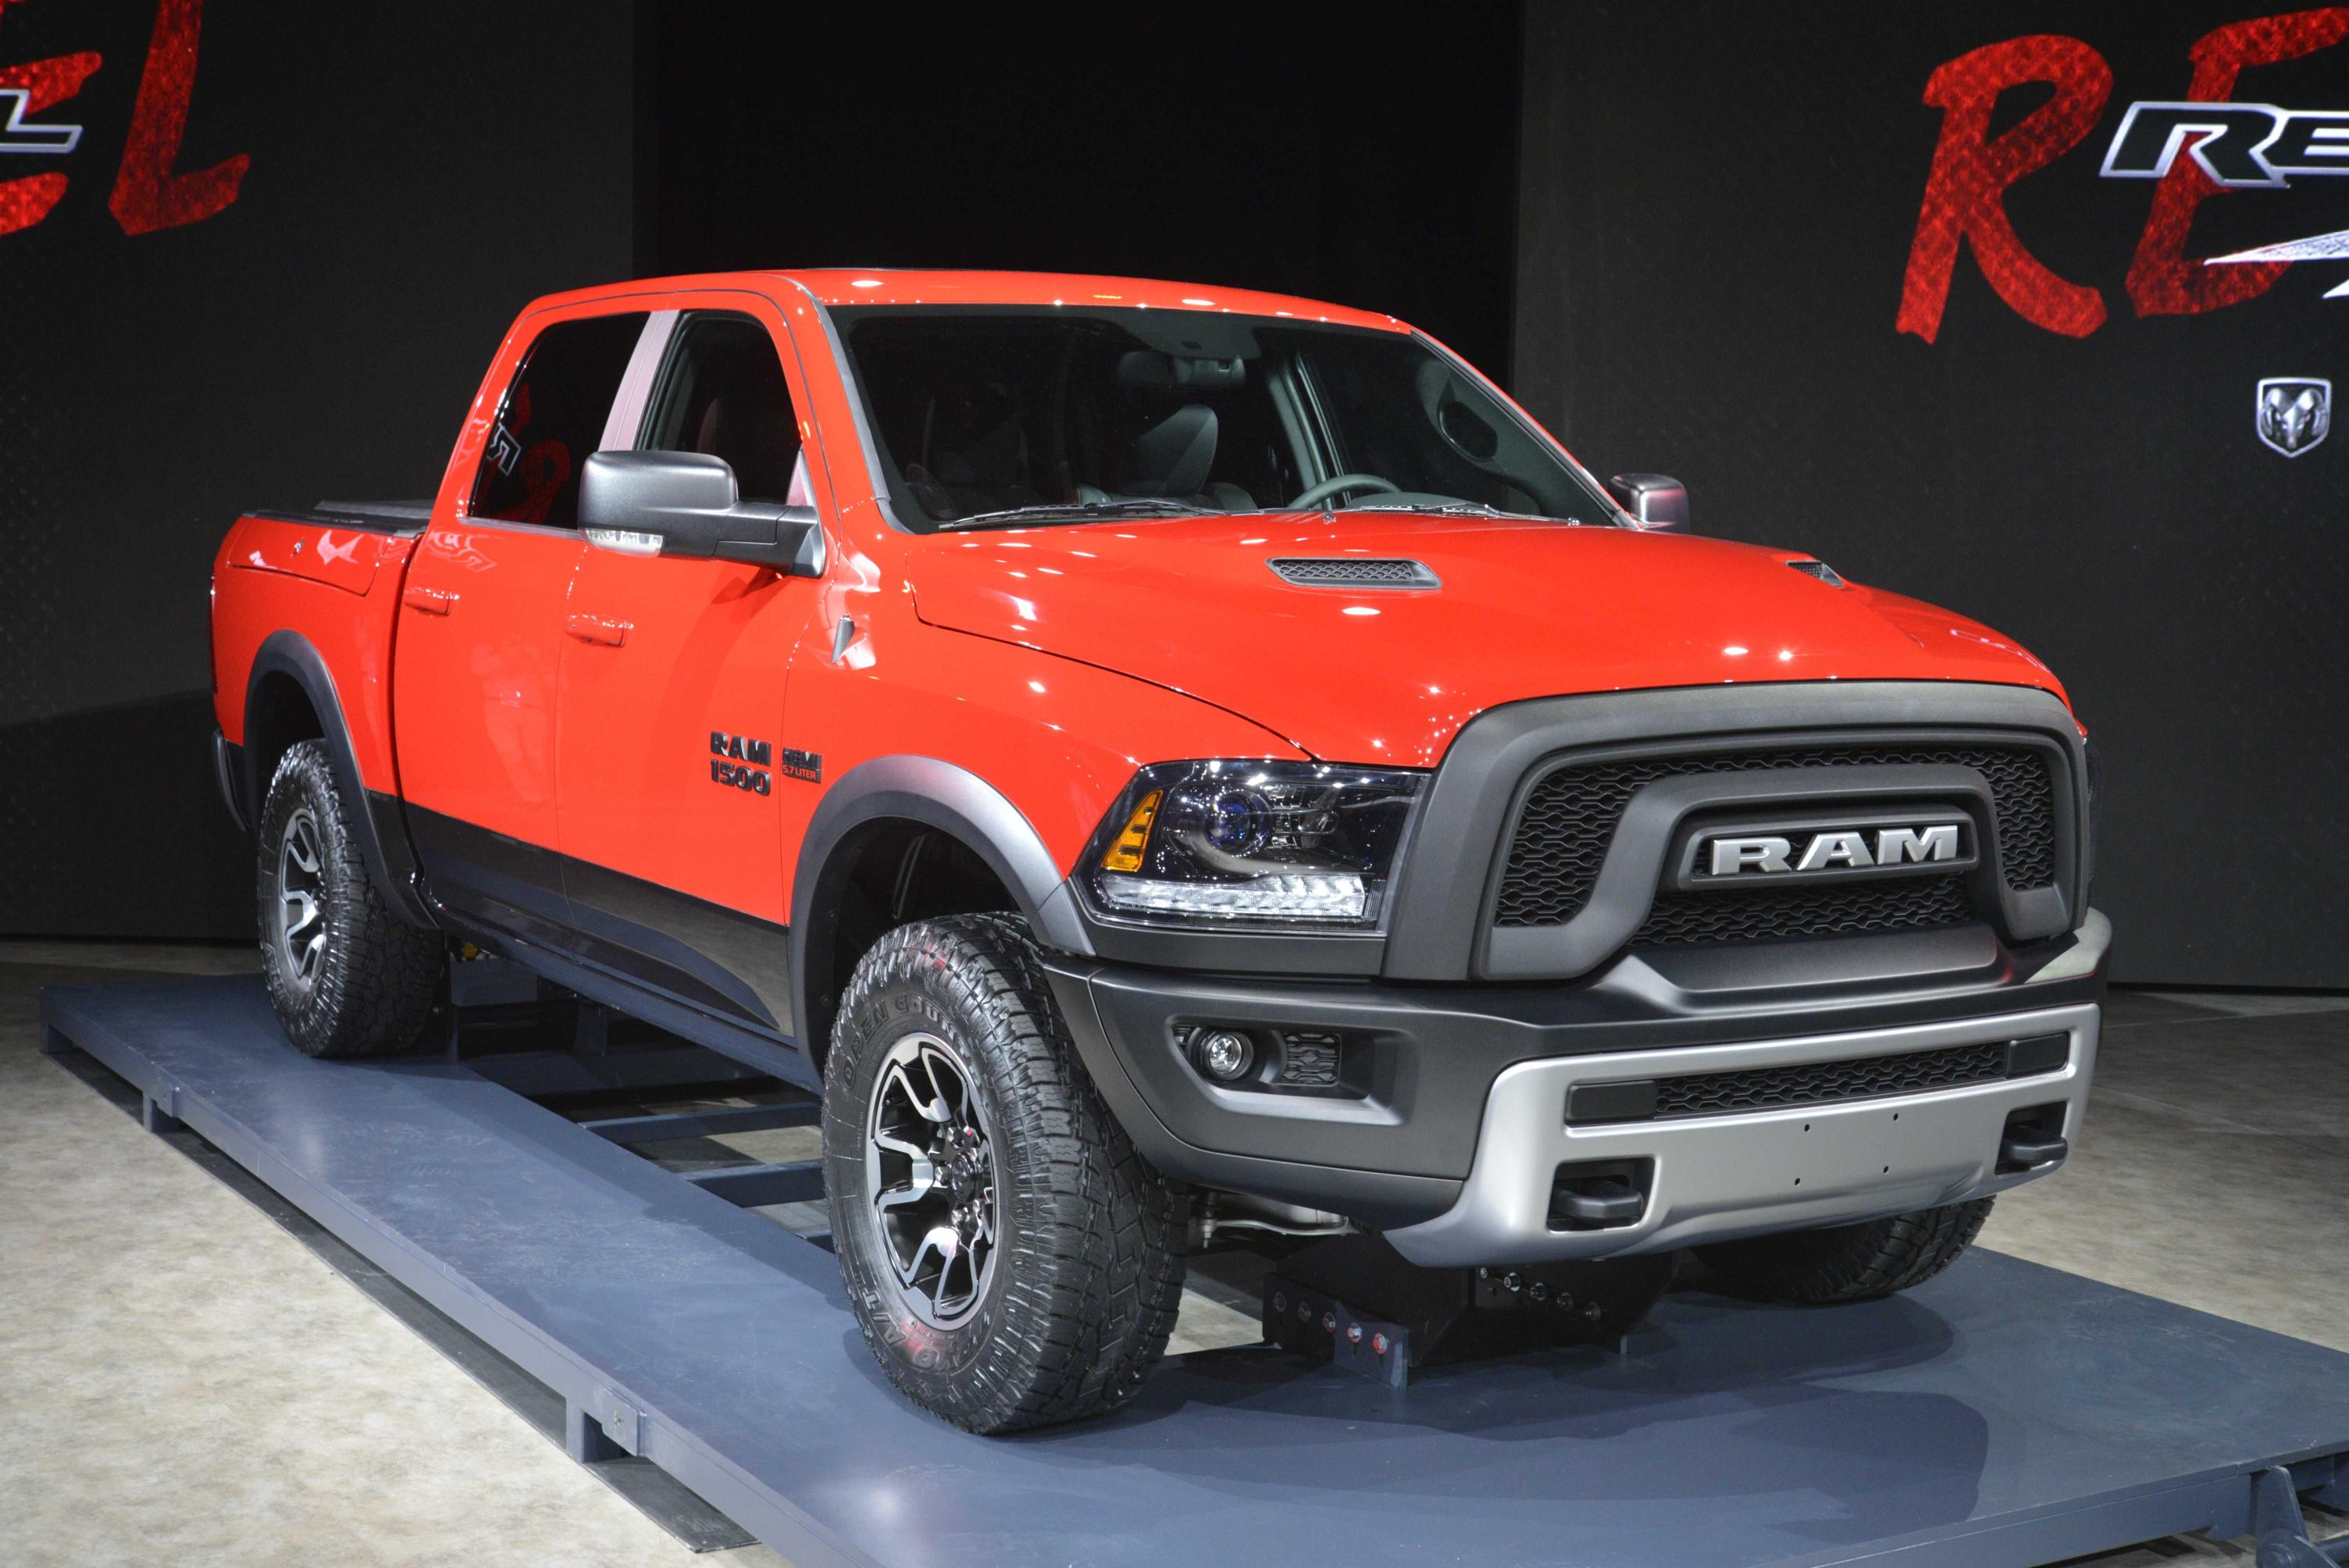 new 2015 ram 1500 rebel makes a statement. Black Bedroom Furniture Sets. Home Design Ideas